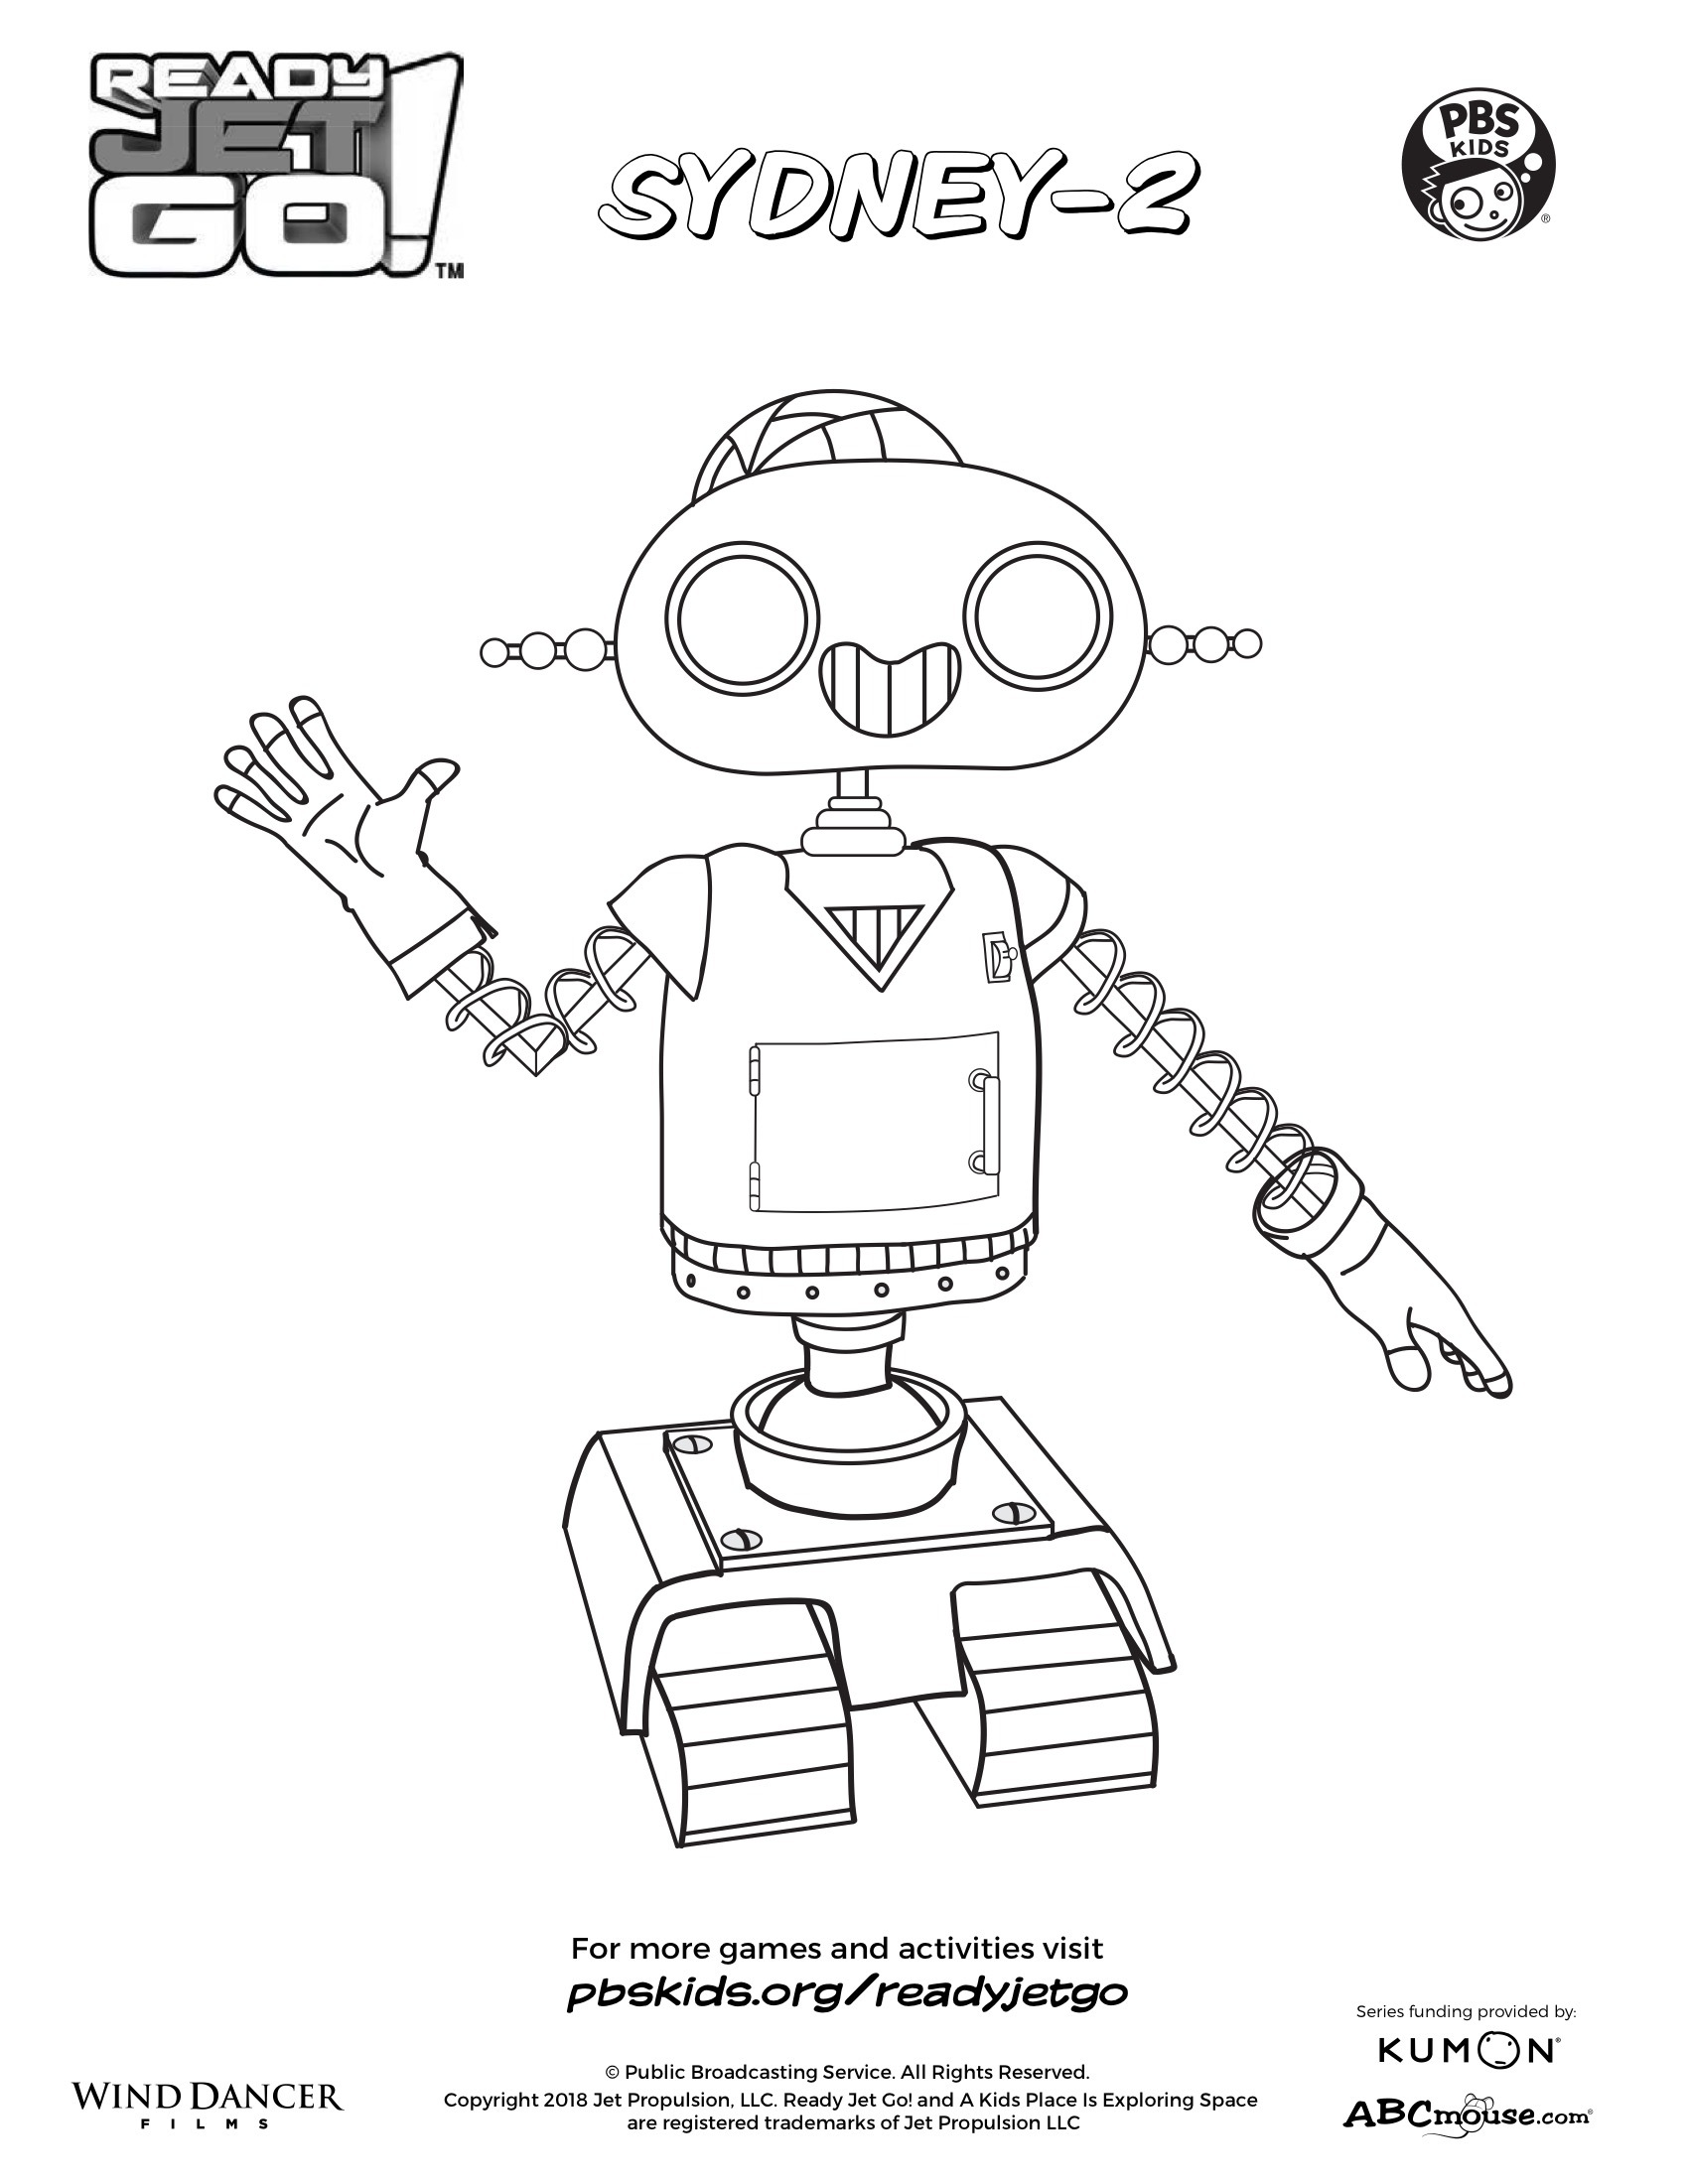 Sydney-2 Coloring Page | Kids Coloring Pages | PBS KIDS for Parents